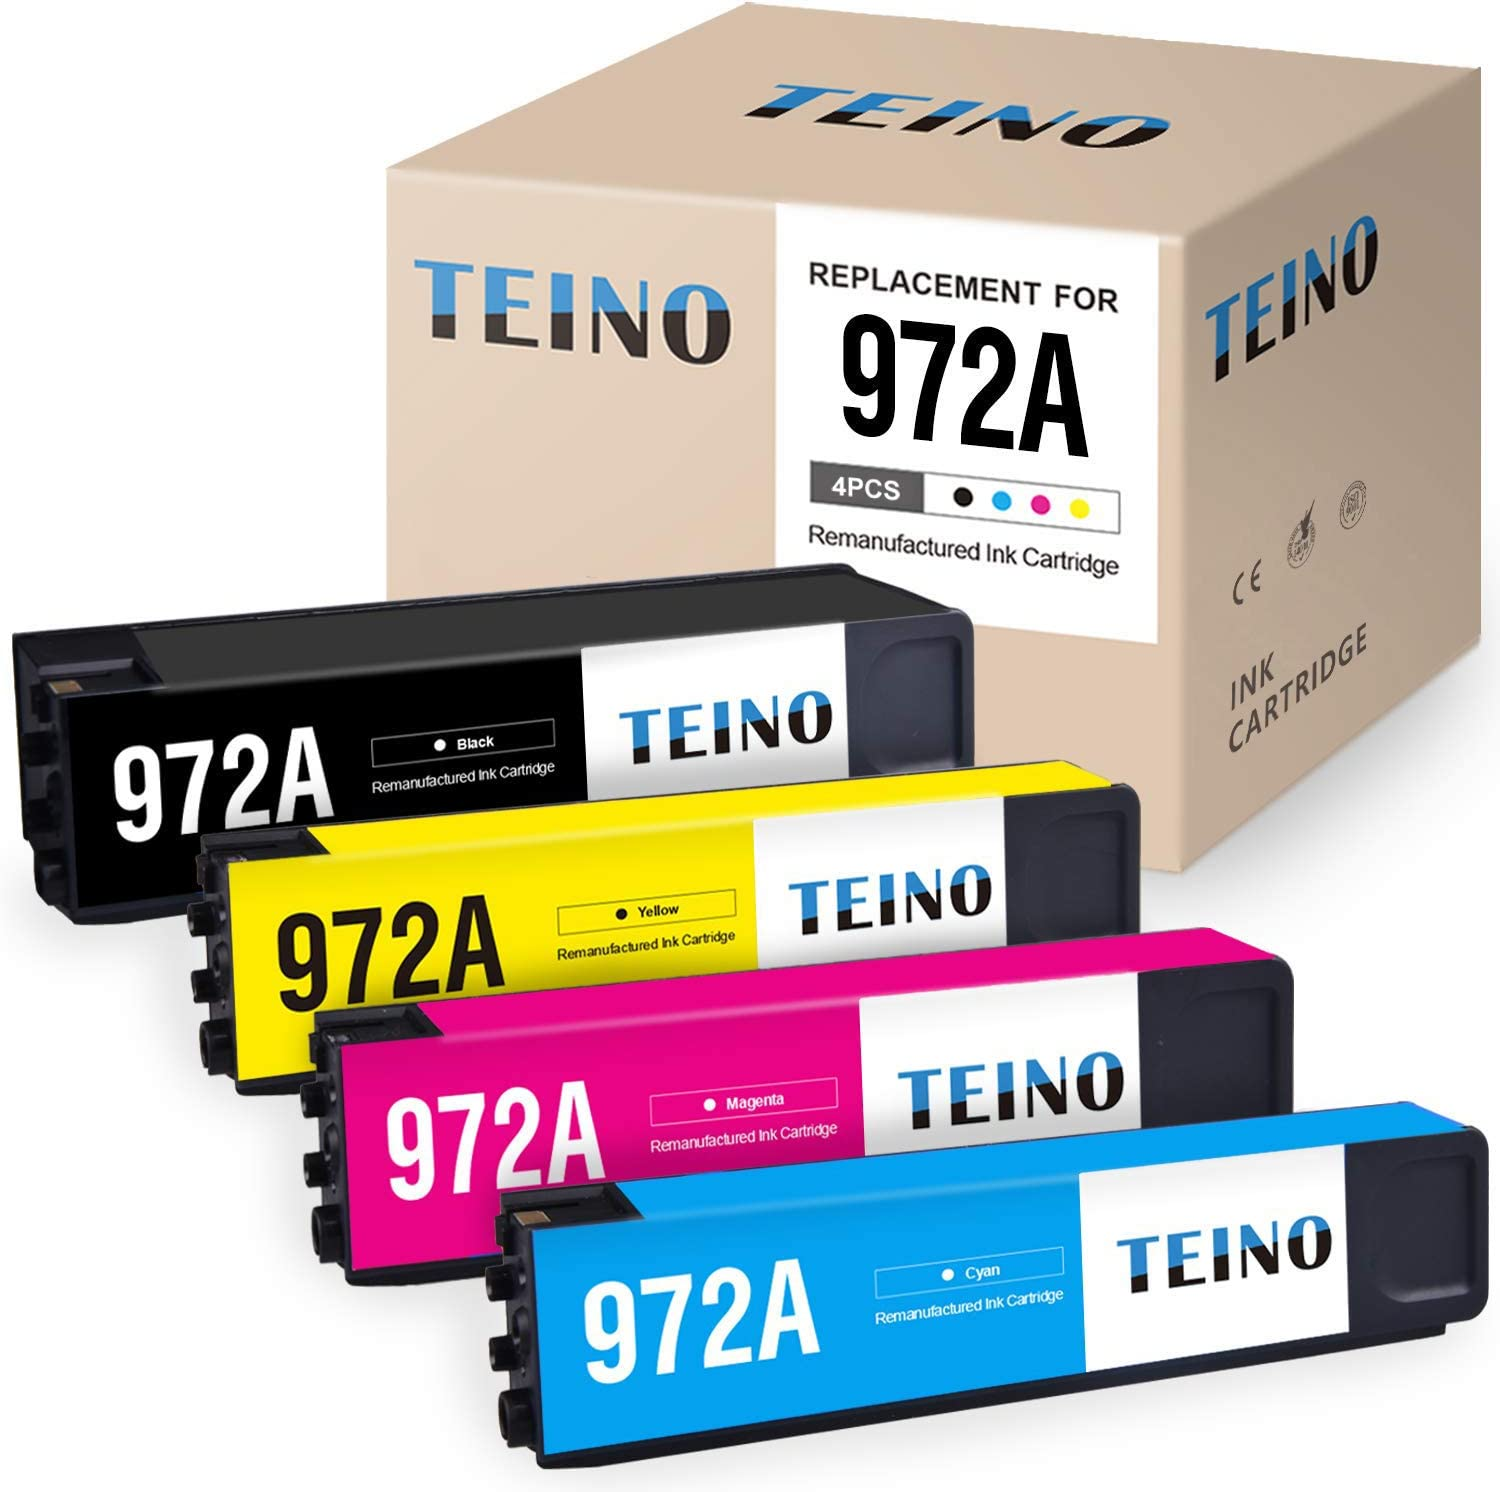 TEINO Remanufactured Ink Cartridges Replacement for HP 972A 972 XL Use with Pagewide Pro 452dn 452dw MFP 577dw 477dw 477dn Managed P57750dw (1 Black, 1 Cyan, 1 Magenta, 1 Yellow, 4-Pack)